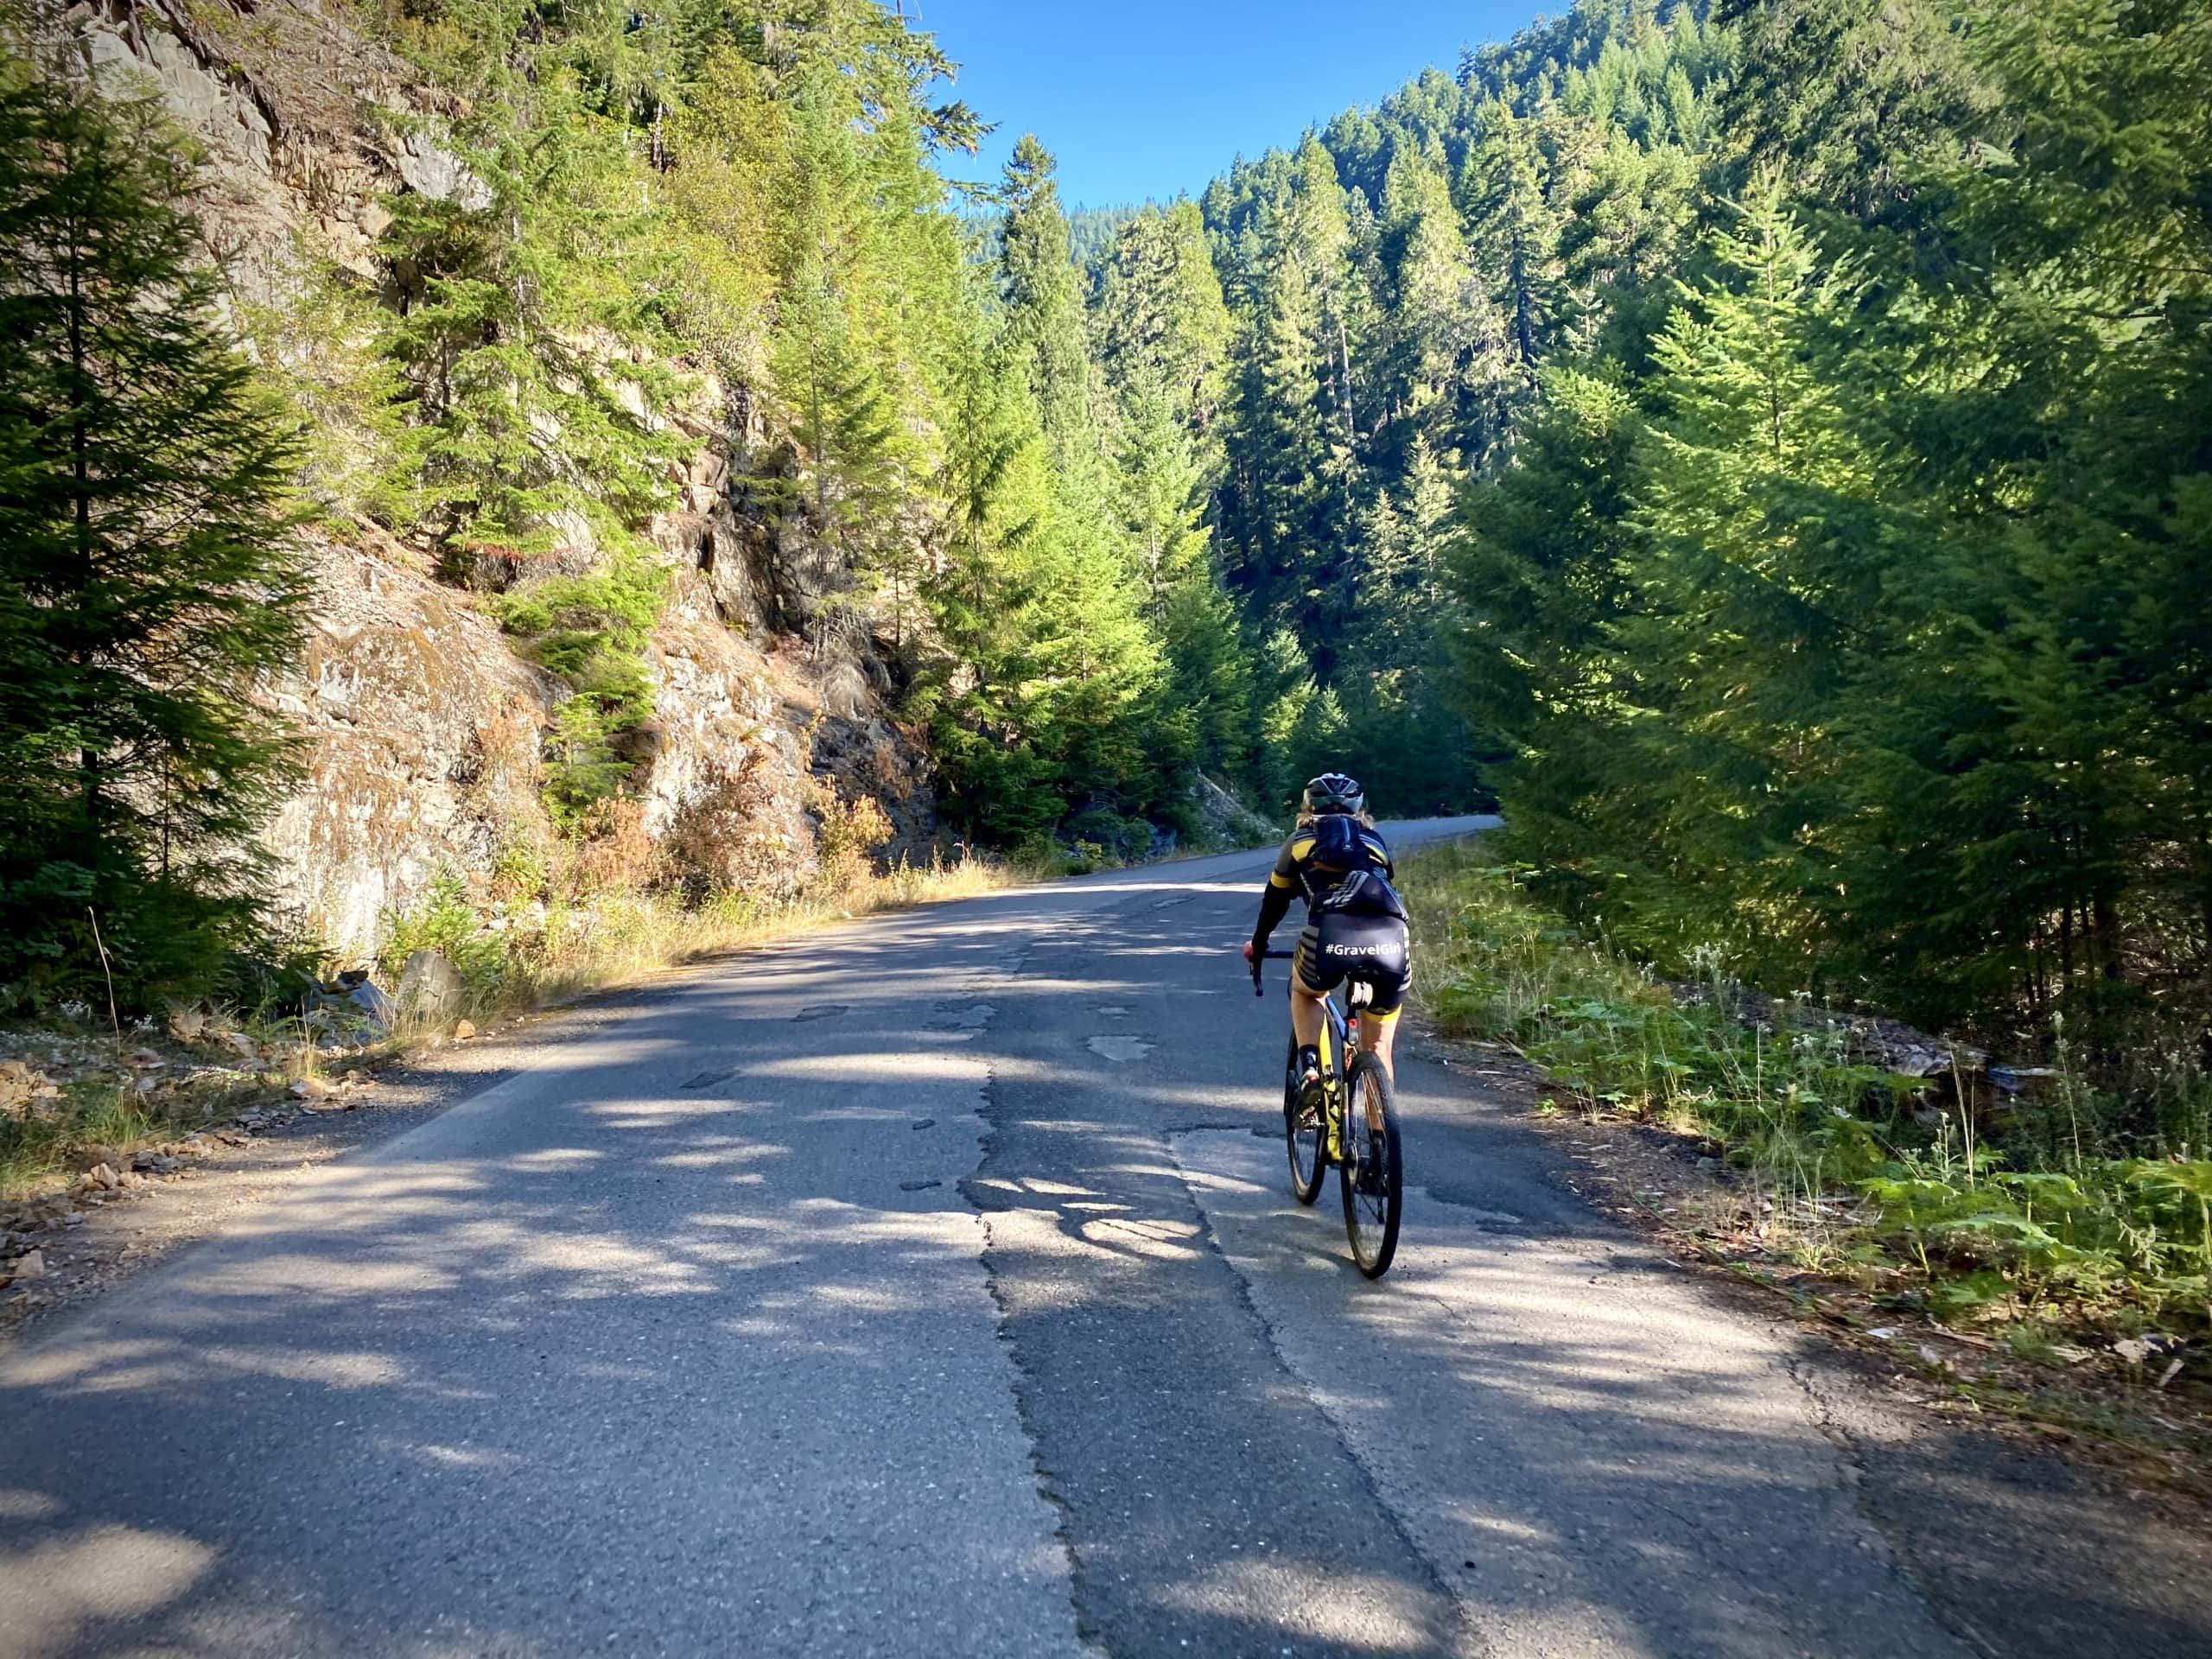 Cyclist on NF-22 near the junction with NF-2213 near Dorena, Oregon.